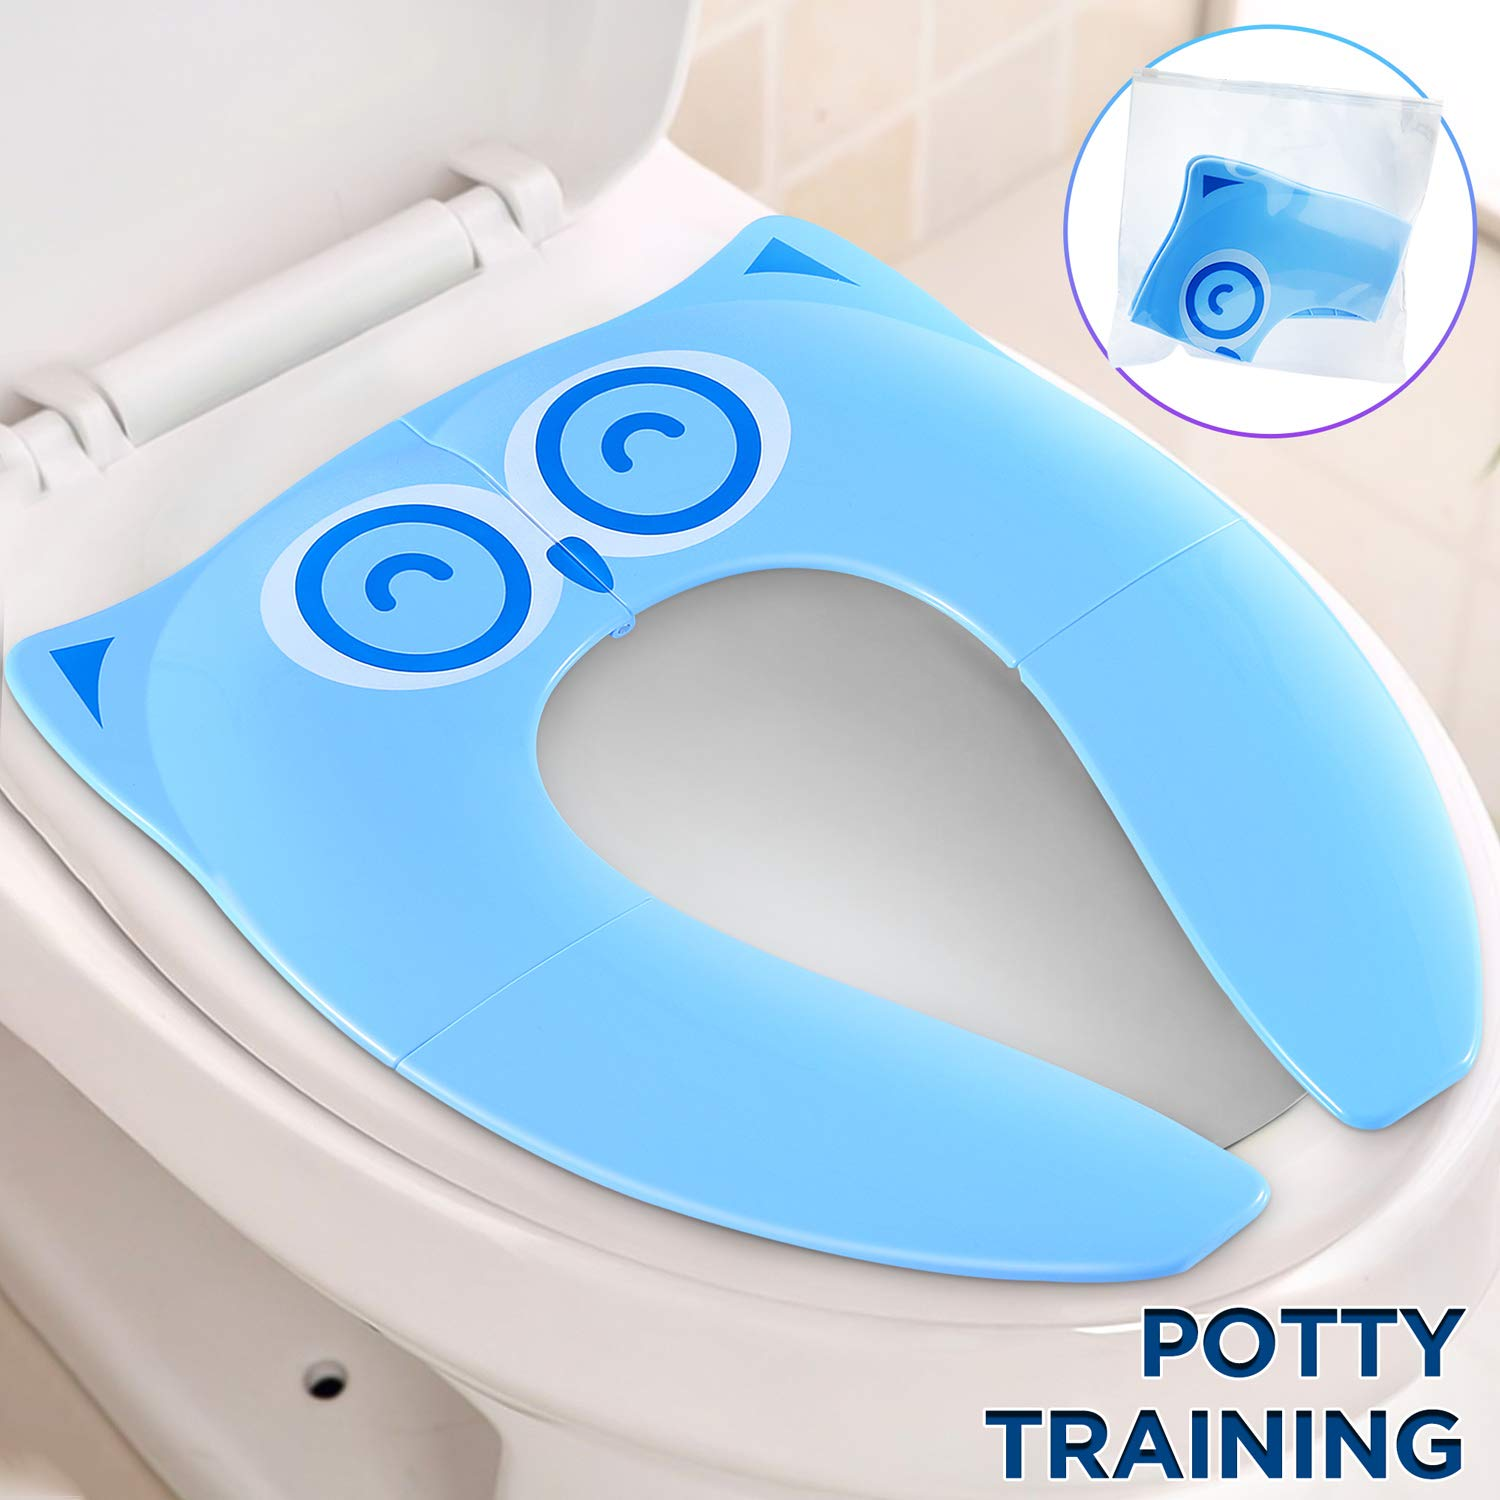 Amazing Gimars Upgrade Stable Folding Travel Portable Potty Training Seat Fits Most Toilets No Falling In With 6 Large Non Slip Silicone Pad Home Reusable Short Links Chair Design For Home Short Linksinfo